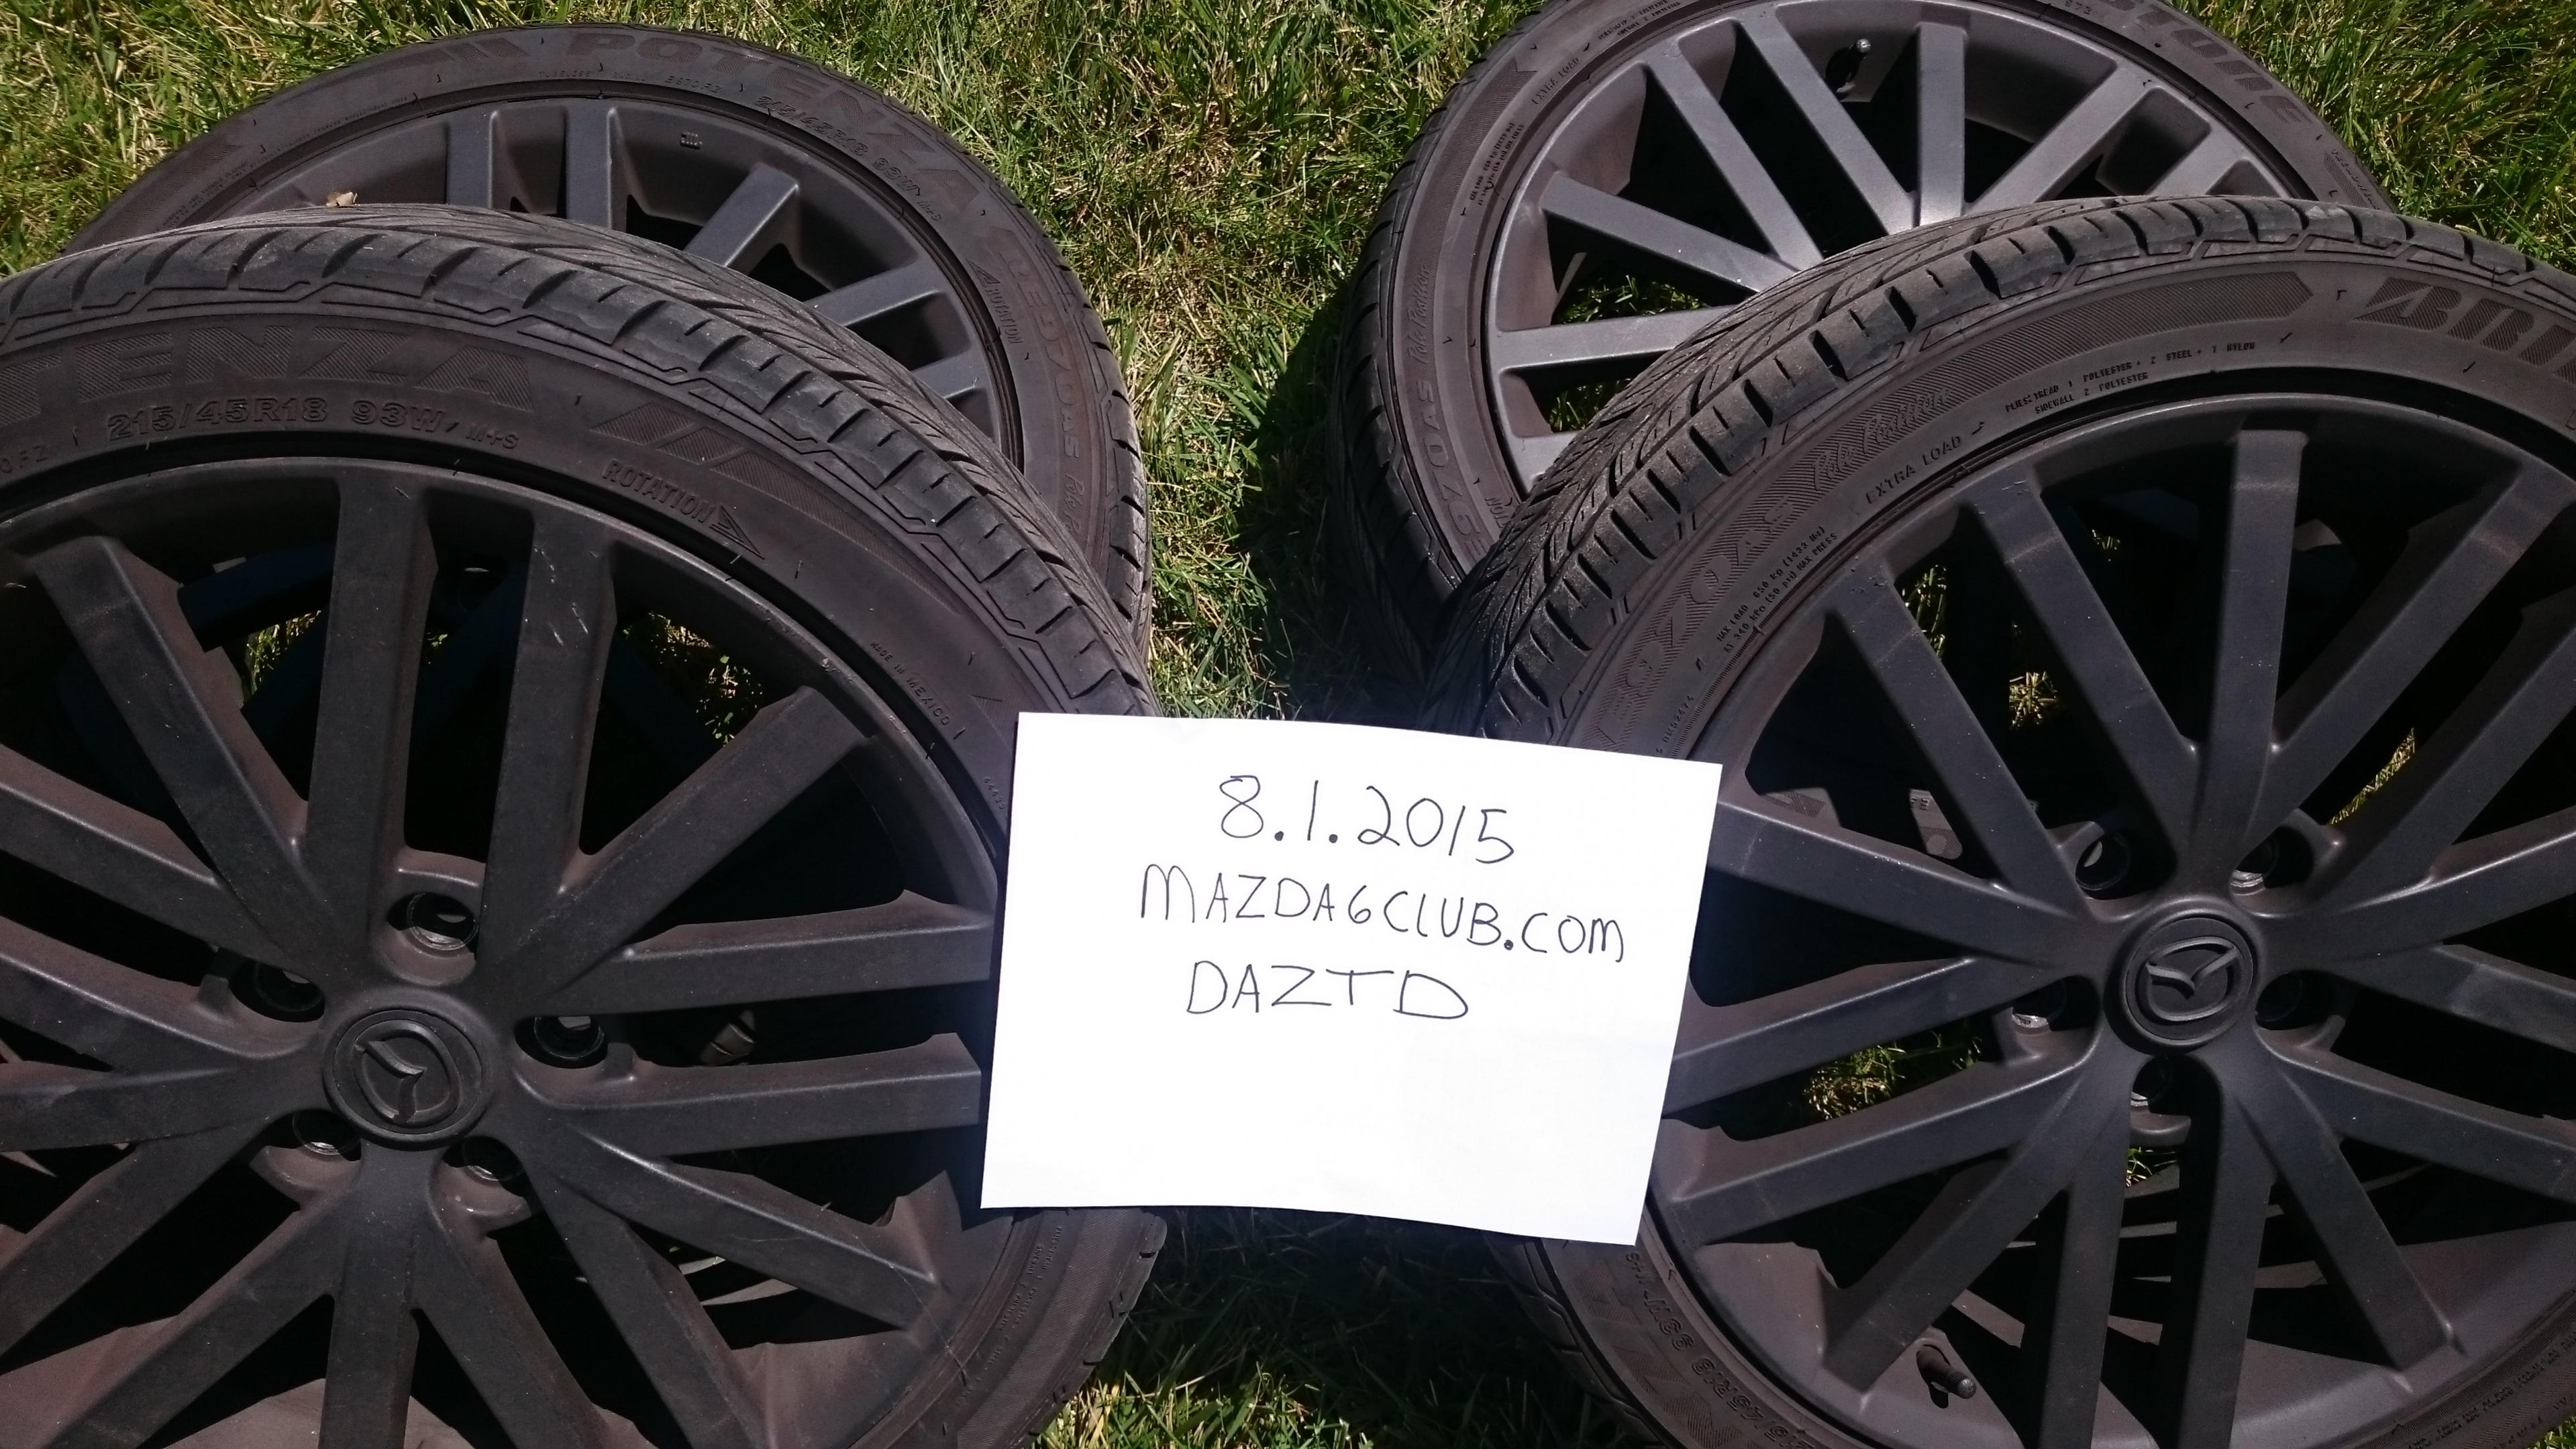 mazda mounted are i forum my tinypic in job will nankang cache put rims showthread refinishing post wheels sale to installed few be finally tires and finish next weeks buying once com for the on again img